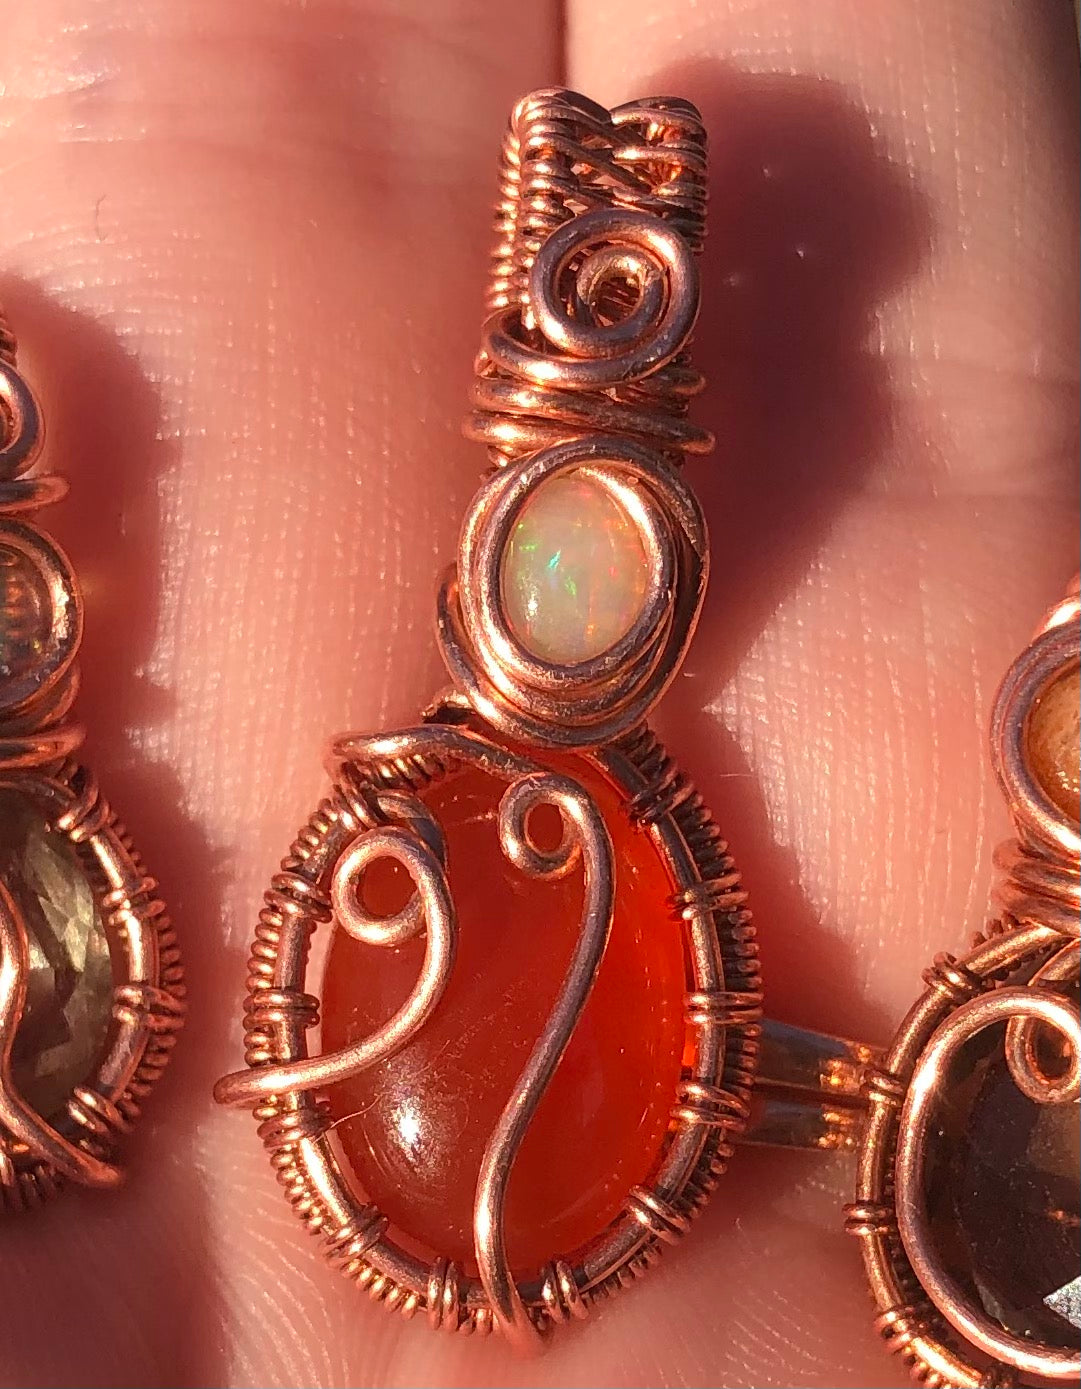 Carnelian and opal in copper